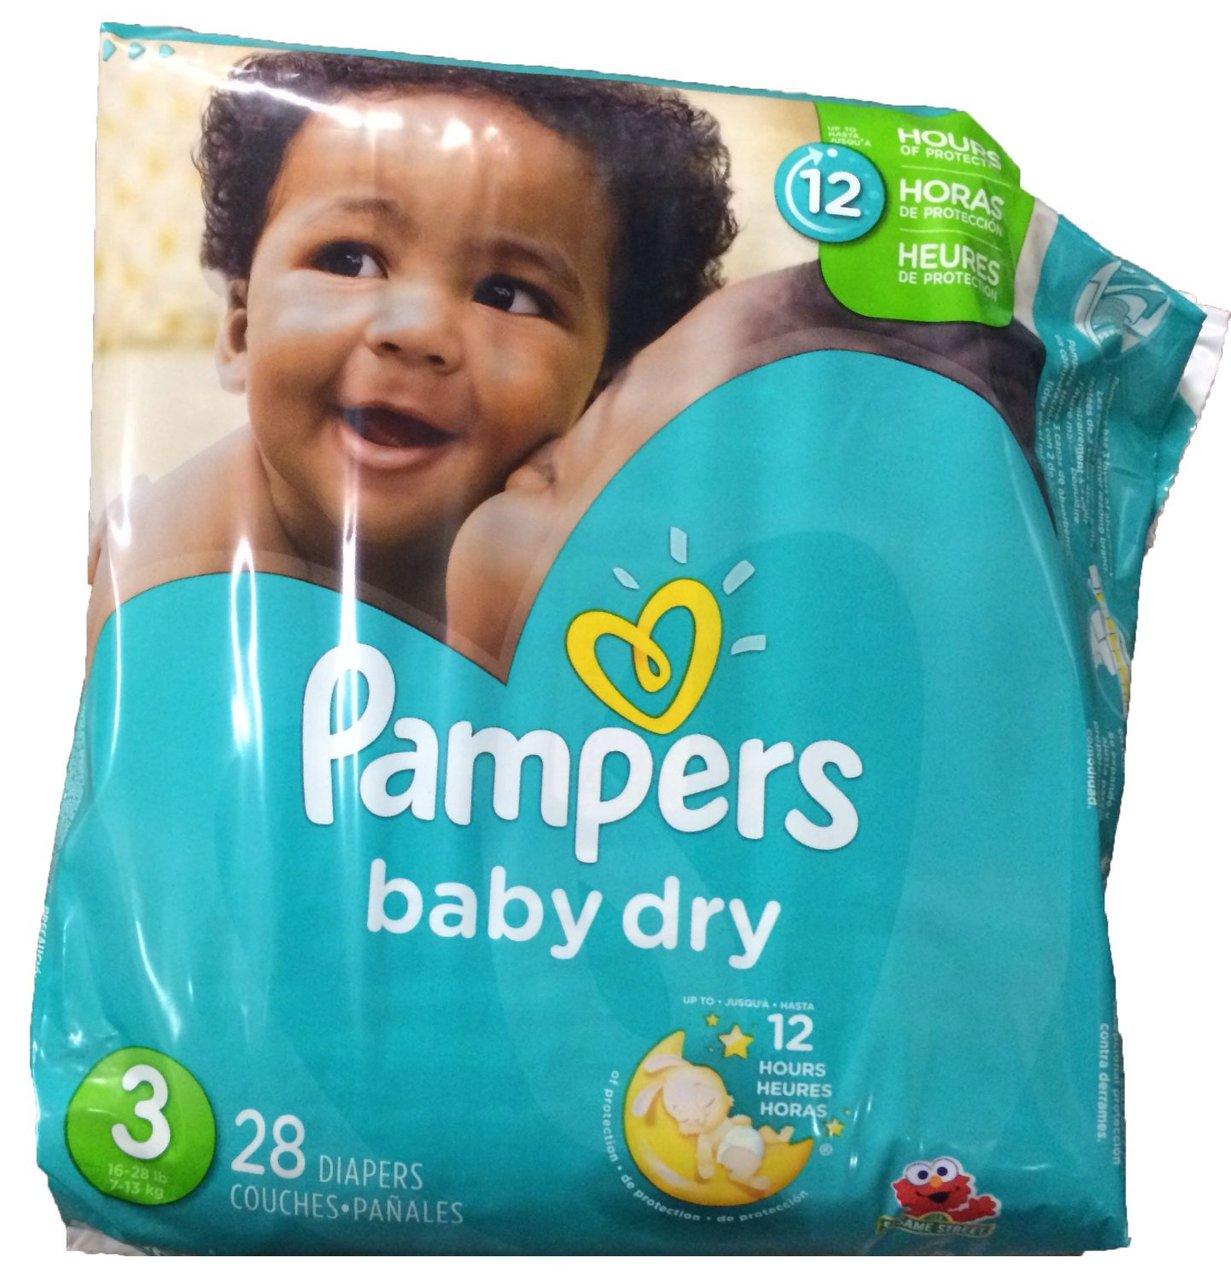 4 PACKS : Pampers Baby Dry Diapers, Size 3, 28 Count by Pampers